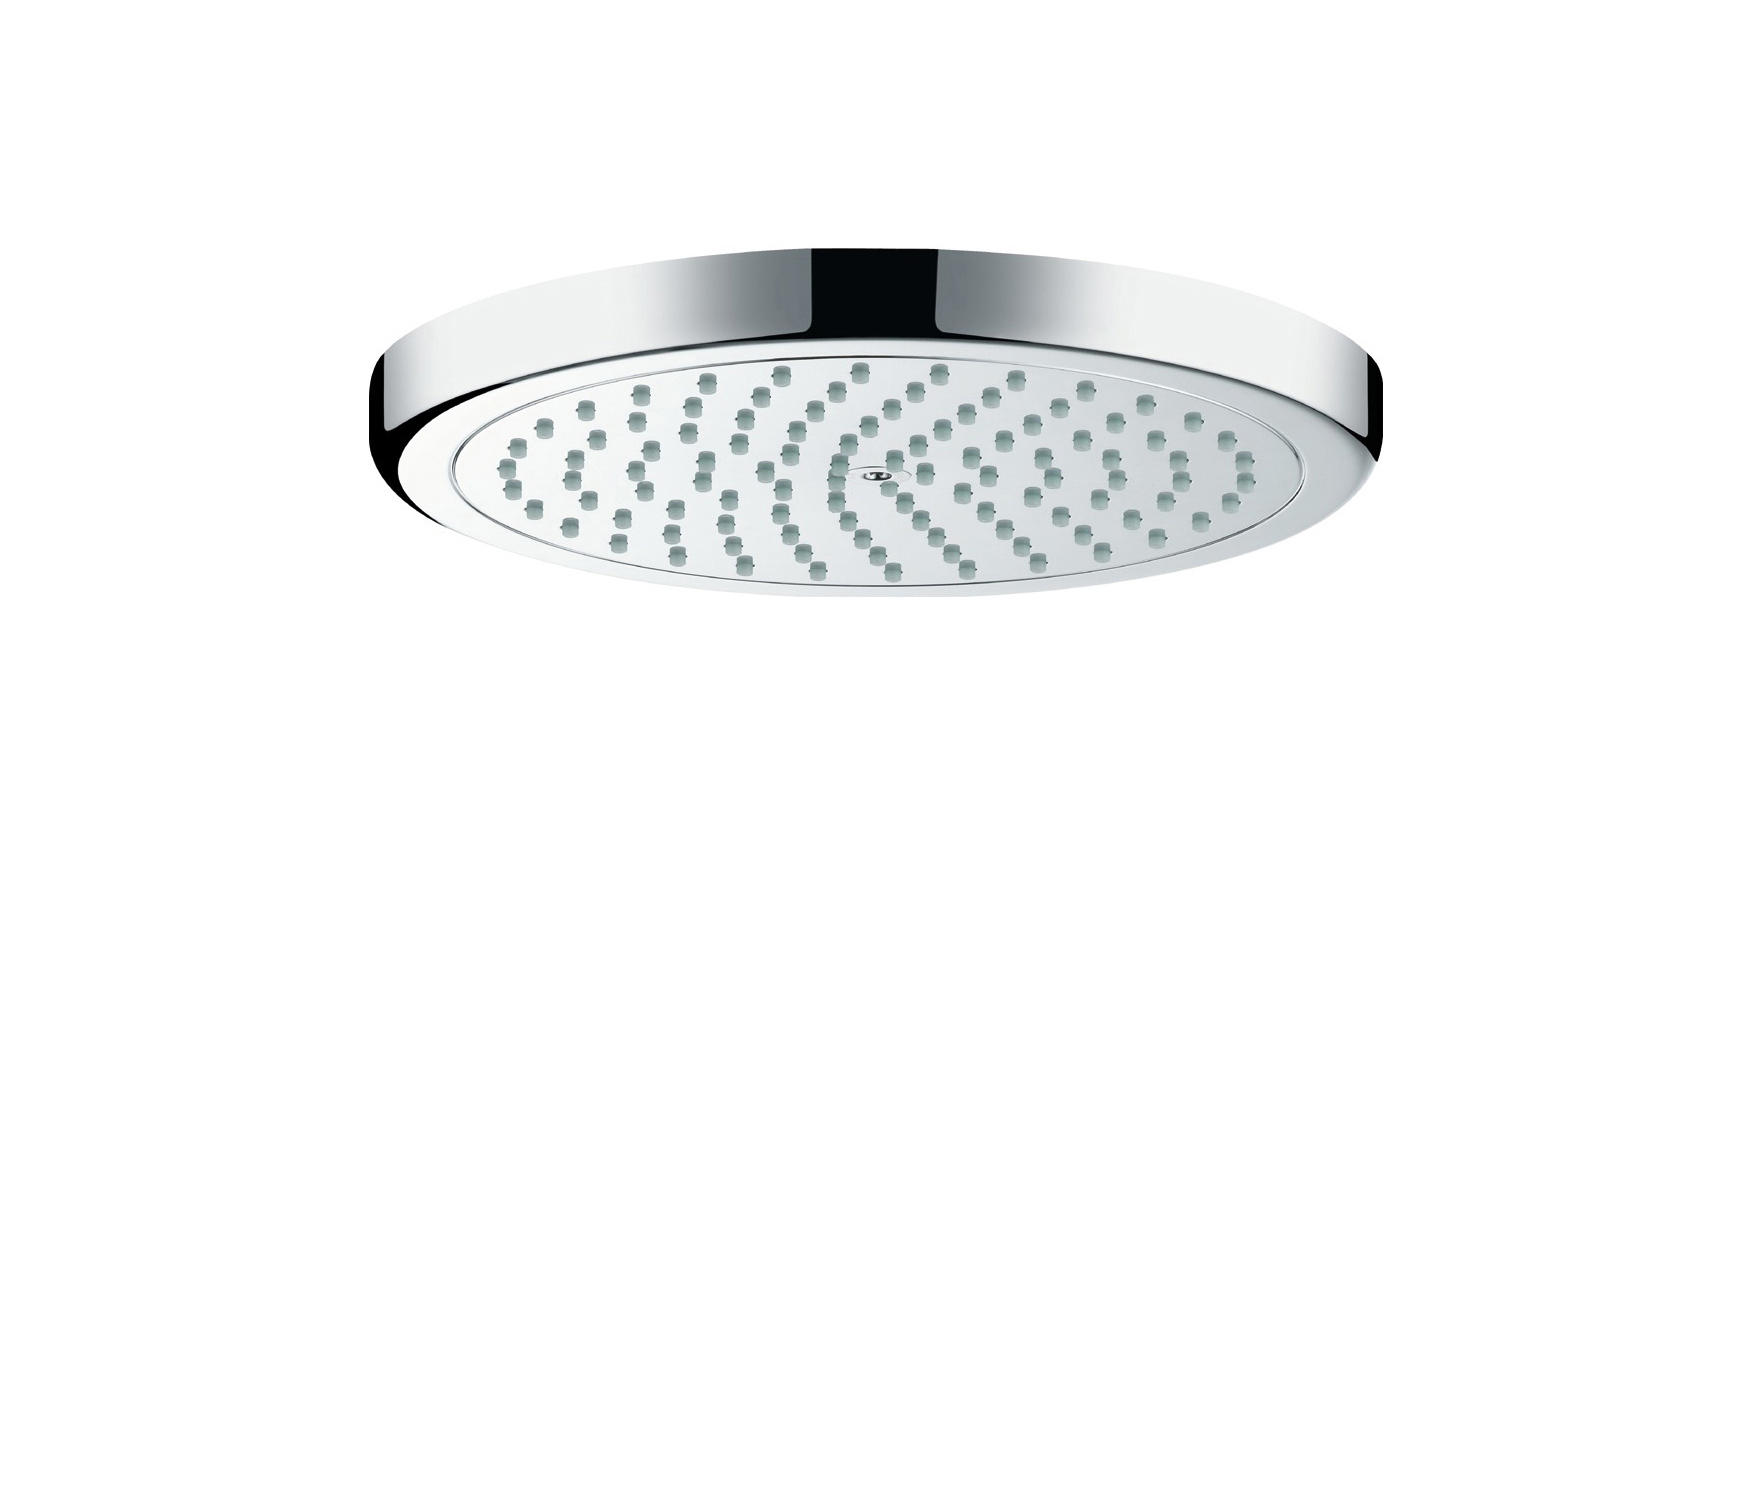 hansgrohe croma 220 air 1jet overhead shower ecosmart 9 l min shower taps mixers from. Black Bedroom Furniture Sets. Home Design Ideas